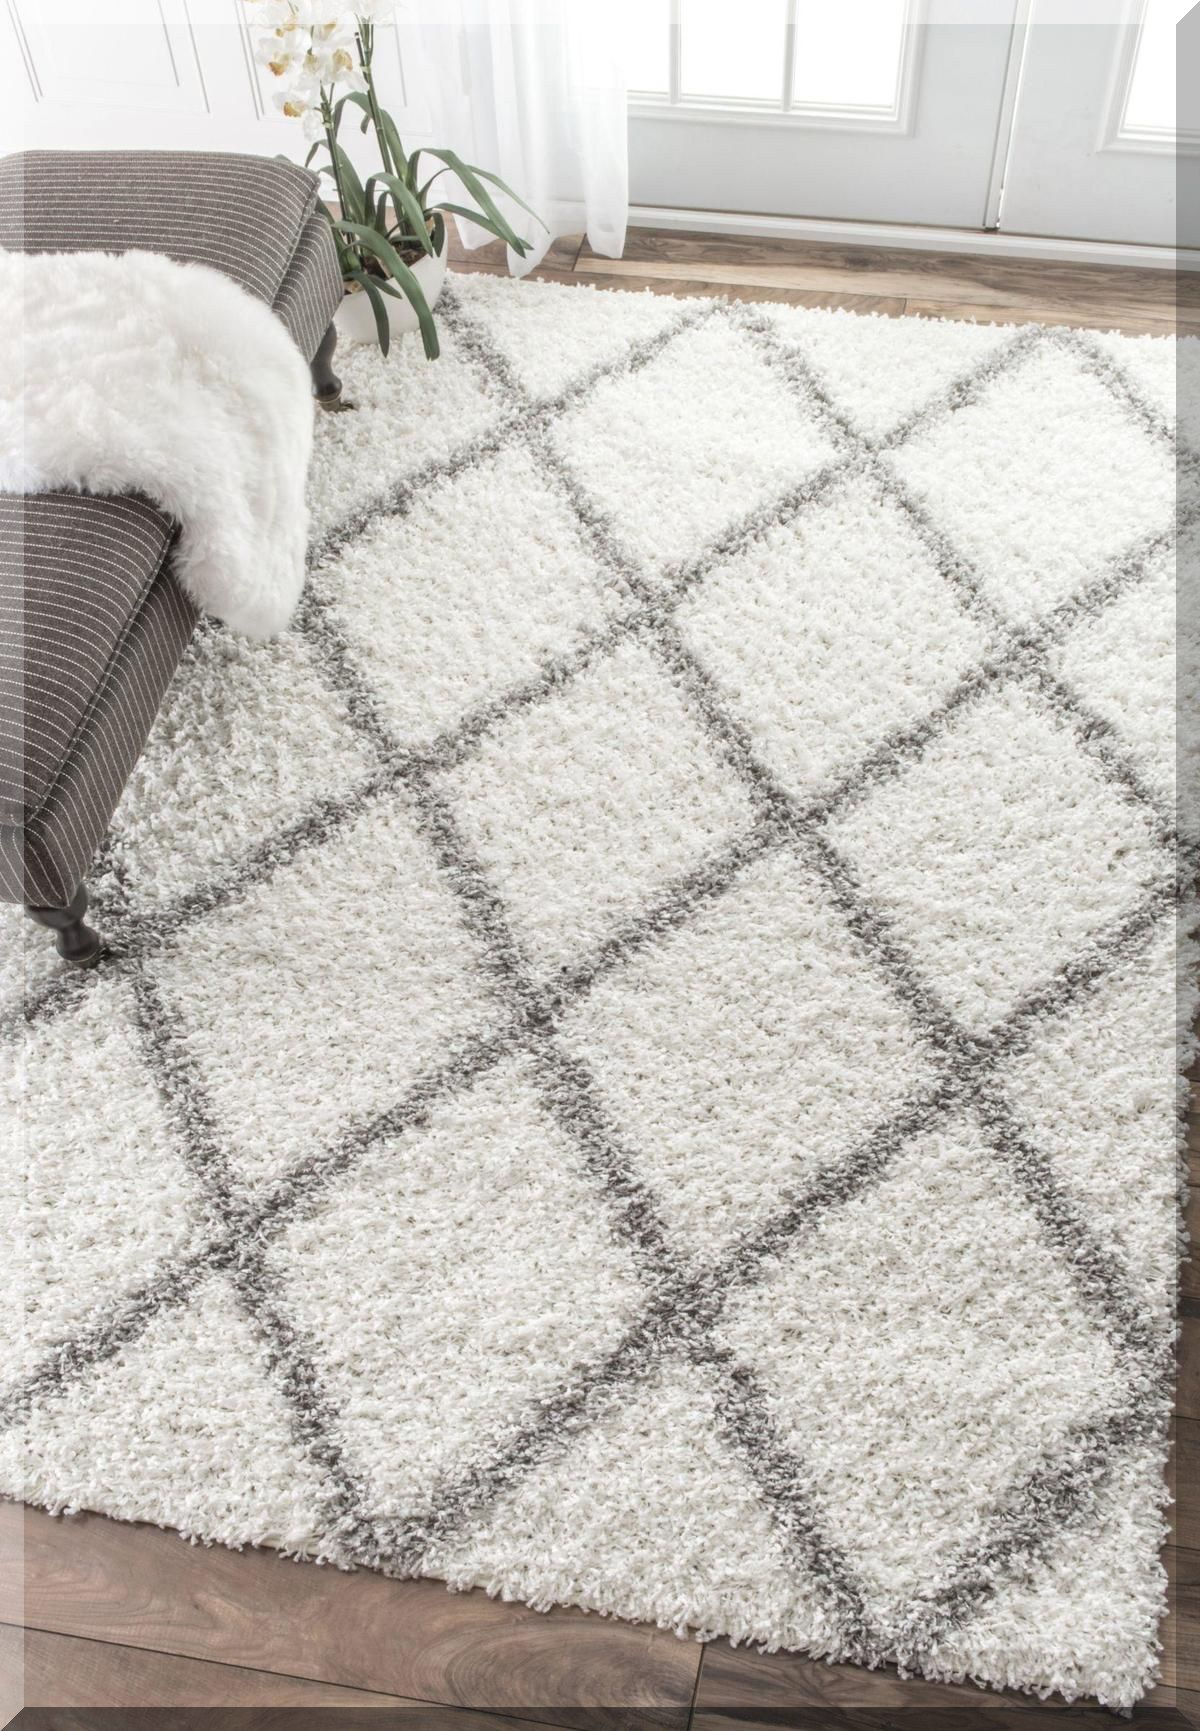 Ppinss Plush Pearl Rug Afaw Thick Pile Shaggy Rug How To Make Your Own Shaggy Rugs In 2020 Rugs In Living Room White Area Rug Living Room Living Room Area Rugs #thick #rug #for #living #room